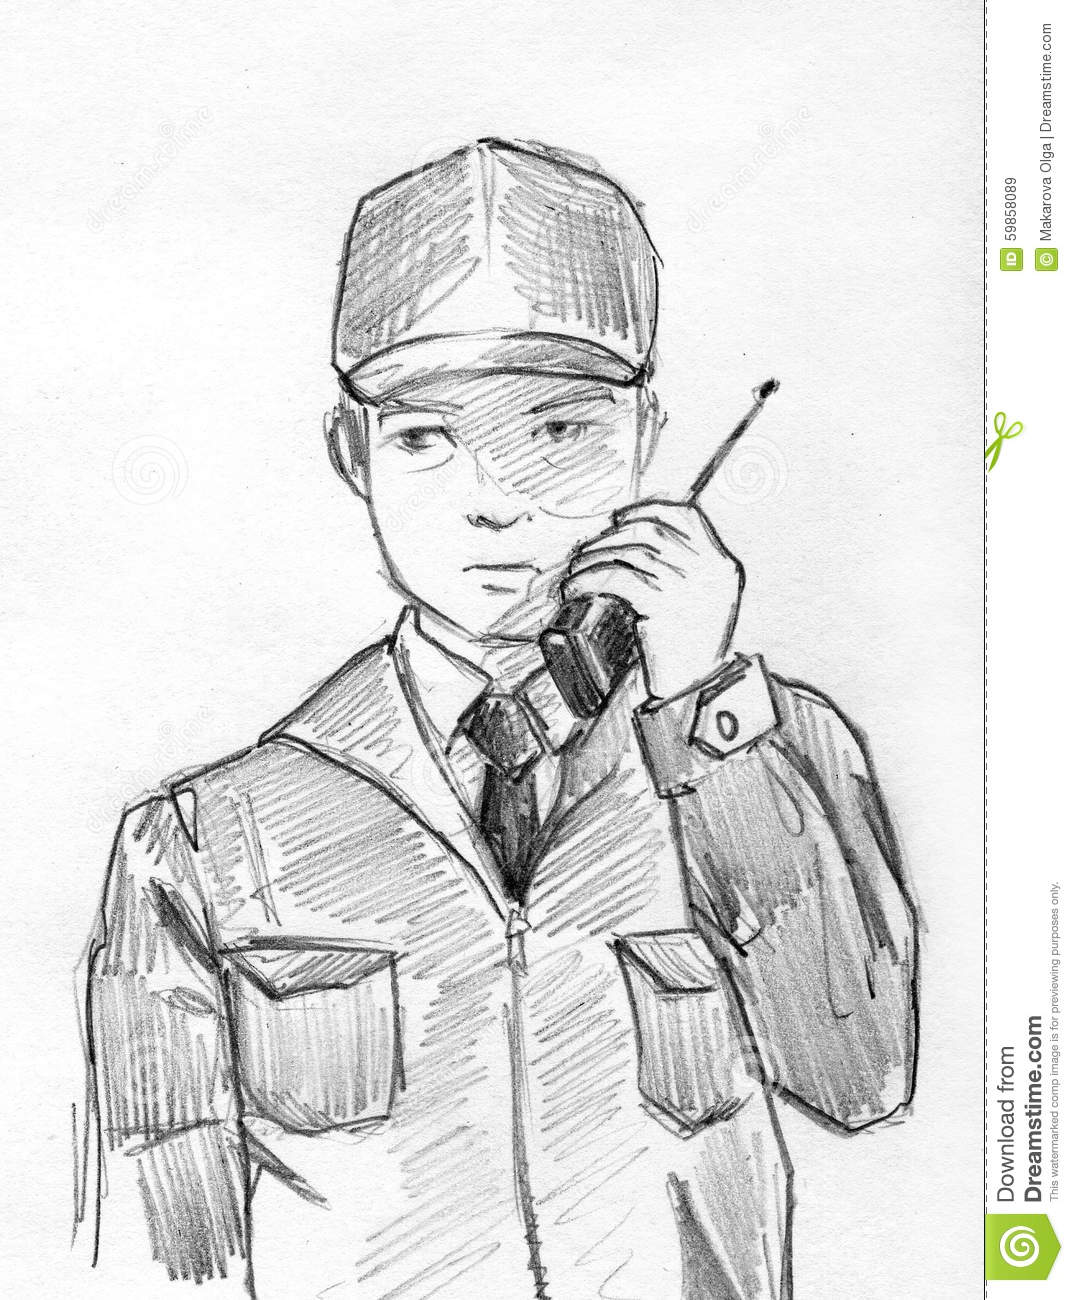 Hand drawn pencil sketch of a security man speaking by radio